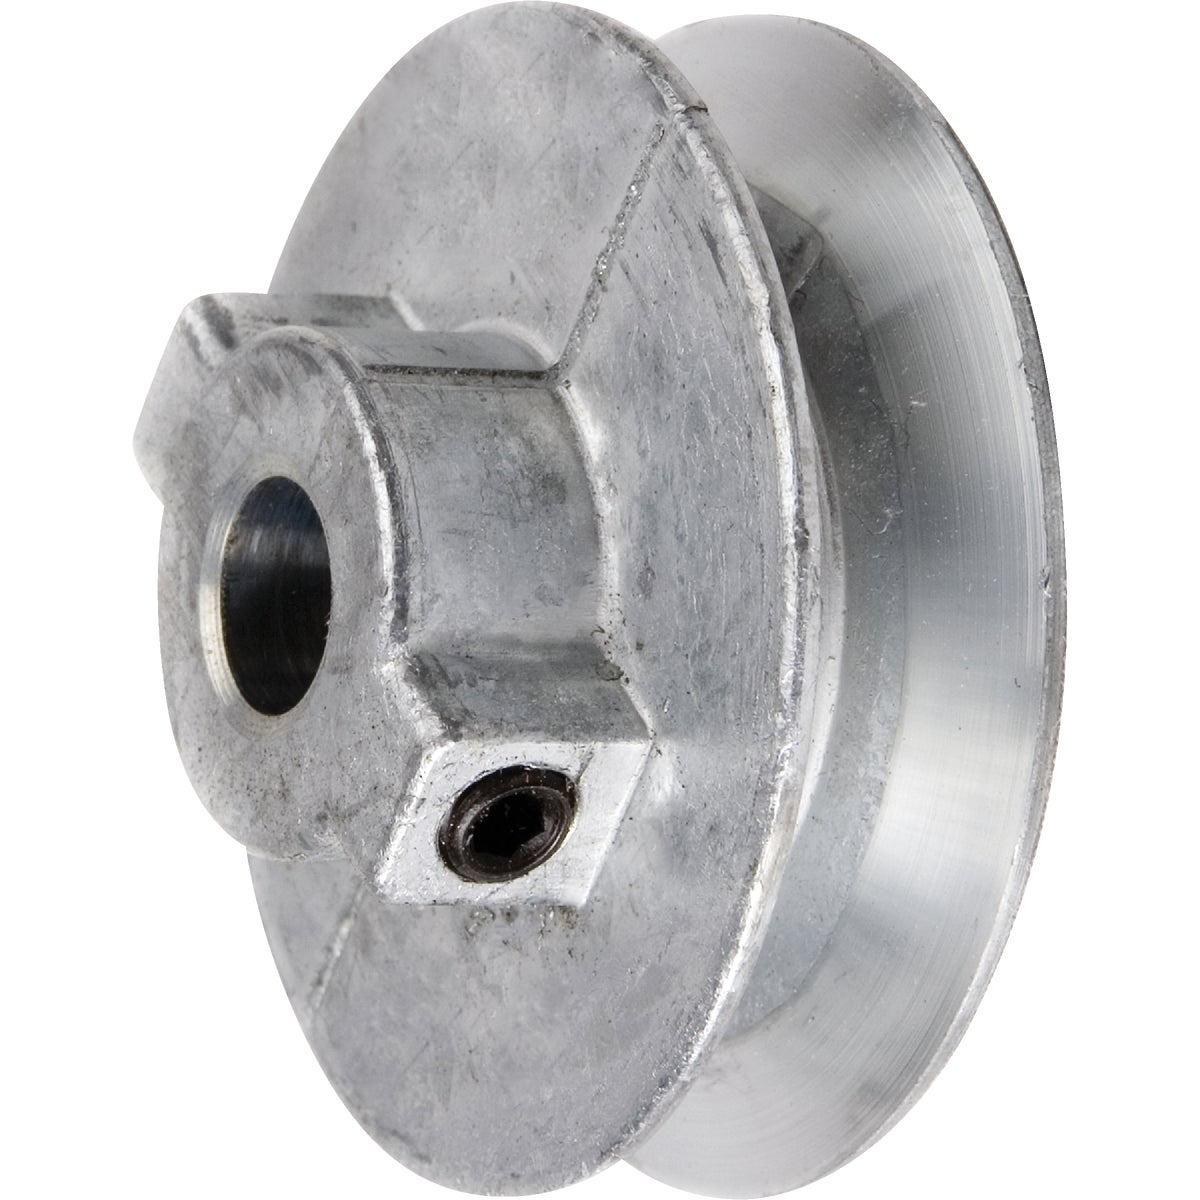 2X5/8 PULLEY - 200A6 by Chicago Die Casting